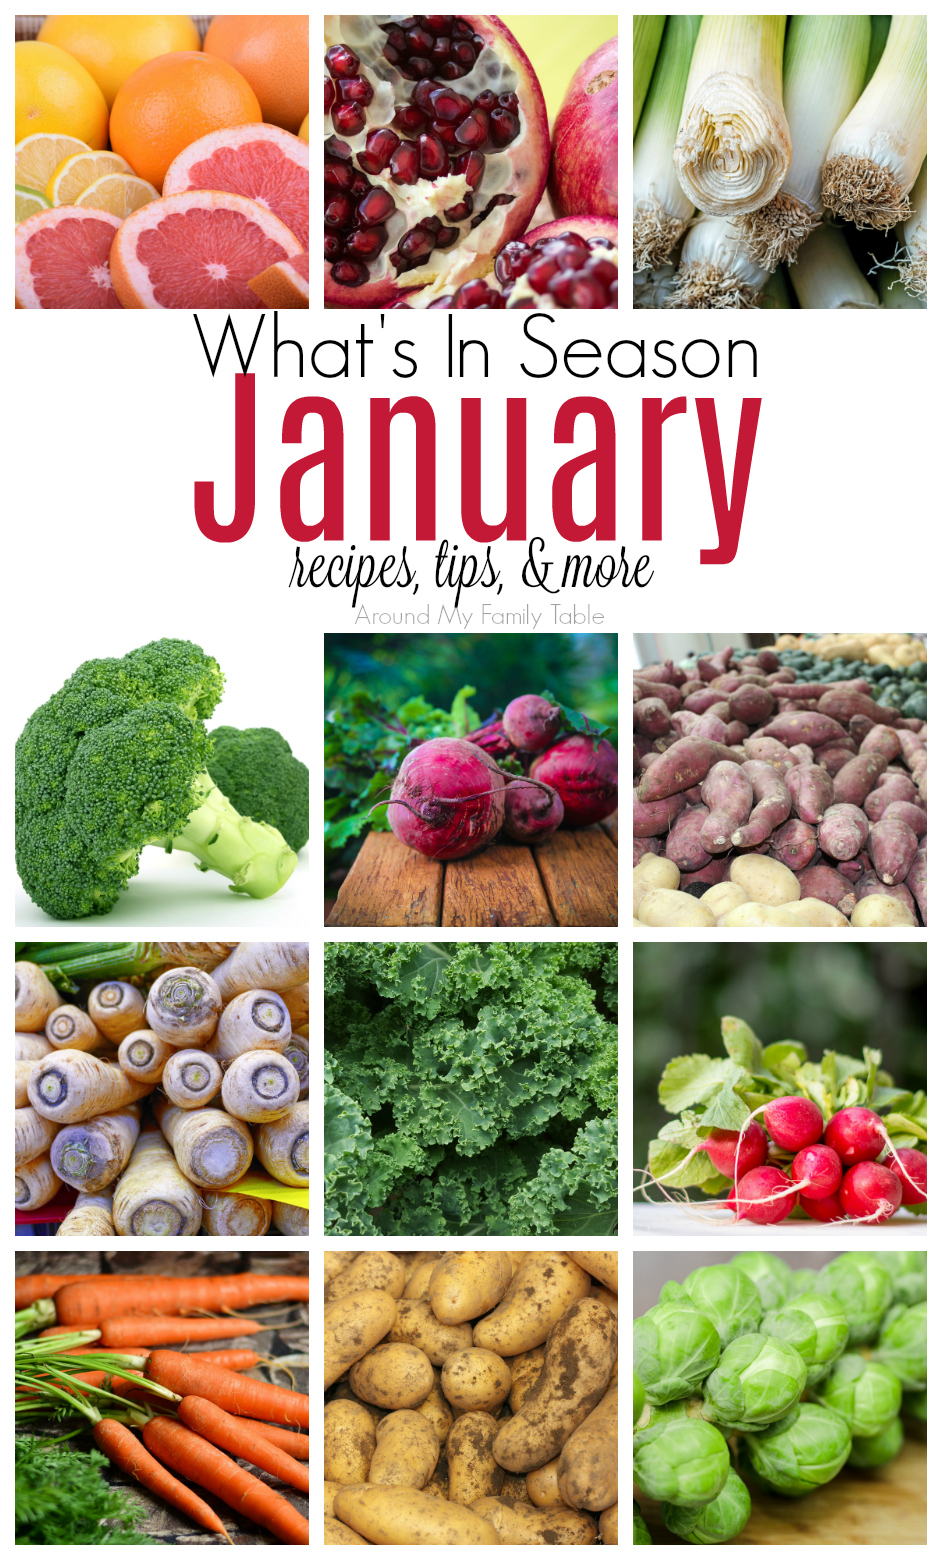 This January -- What's in Season Guide is full of tips and recipes to inspire you to shop and eat seasonally.